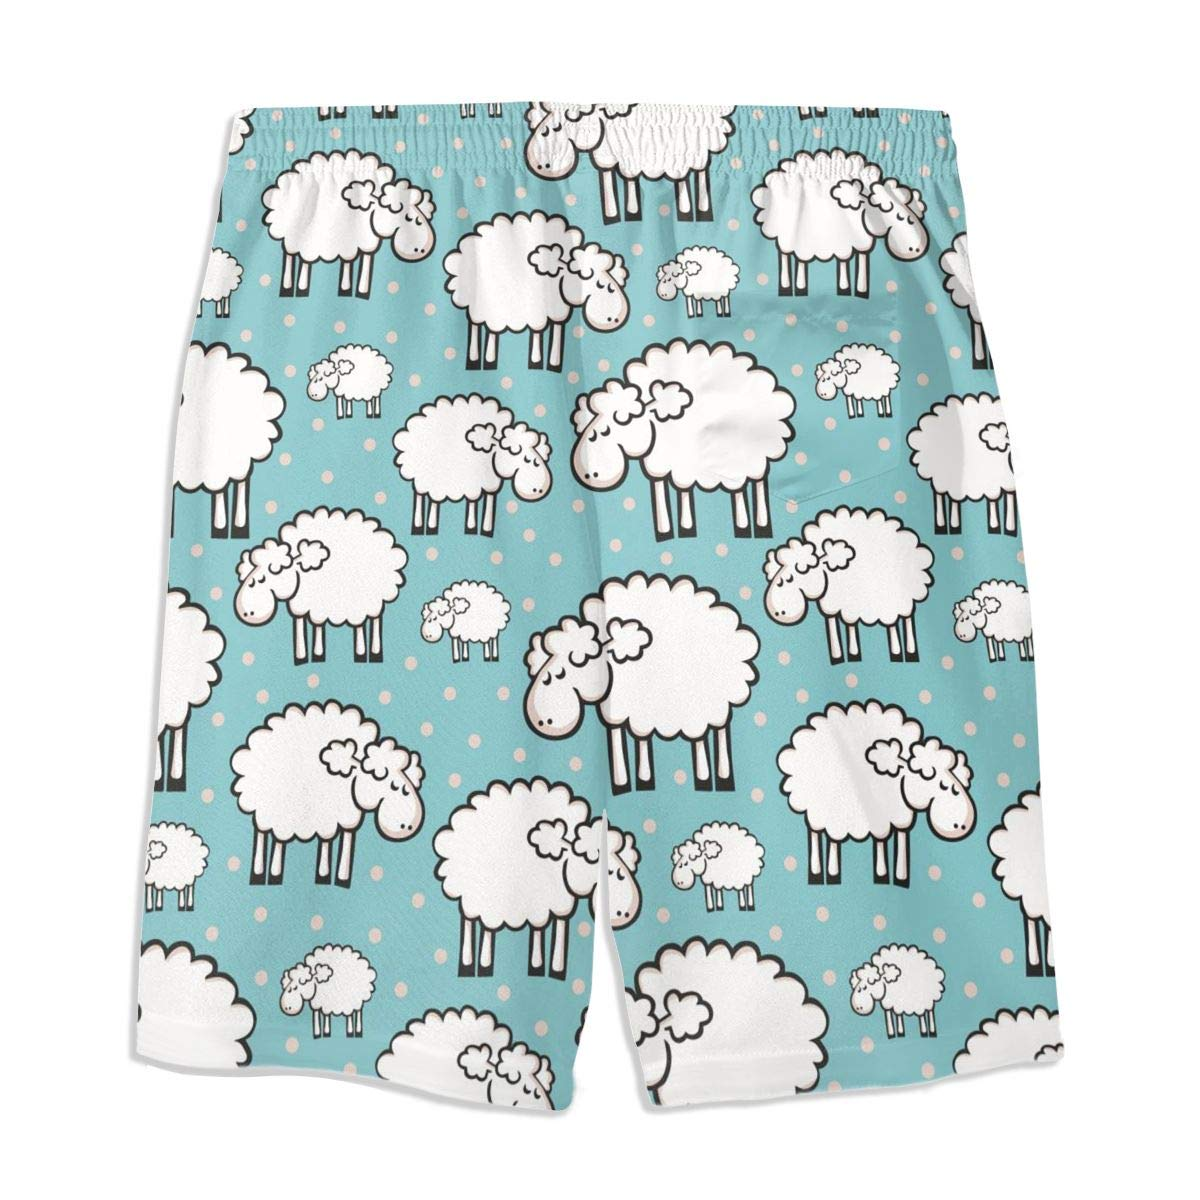 Mens Swim Trunks White Sheeps Printed Beach Board Shorts with Pockets Cool Novelty Bathing Suits for Teen Boys